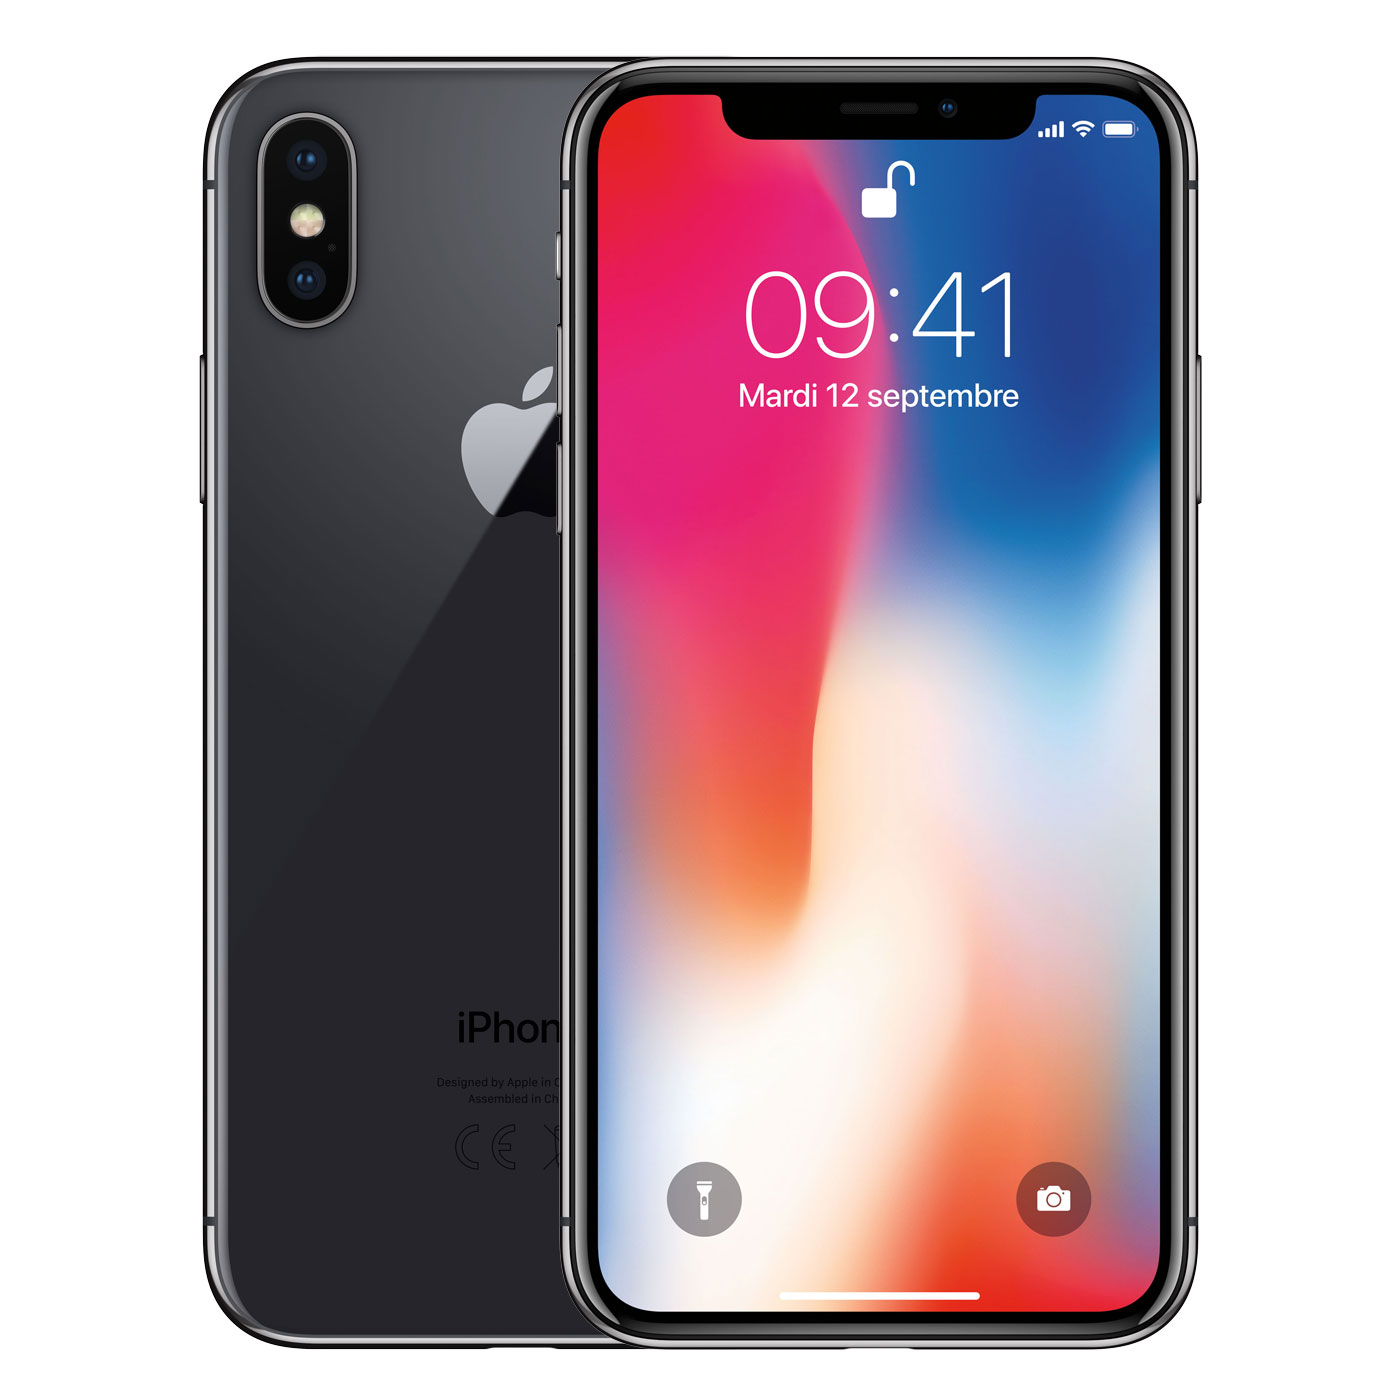 "Mobile & smartphone Apple iPhone X 64 Go Gris Sidéral Smartphone 4G-LTE Advanced IP67 - Apple A11 Bionic Hexa-Core - RAM 3 Go - Ecran Super Retina 5.8"" 1125 x 2436 - 64 Go - NFC/Bluetooth 5.0 - iOS 11"